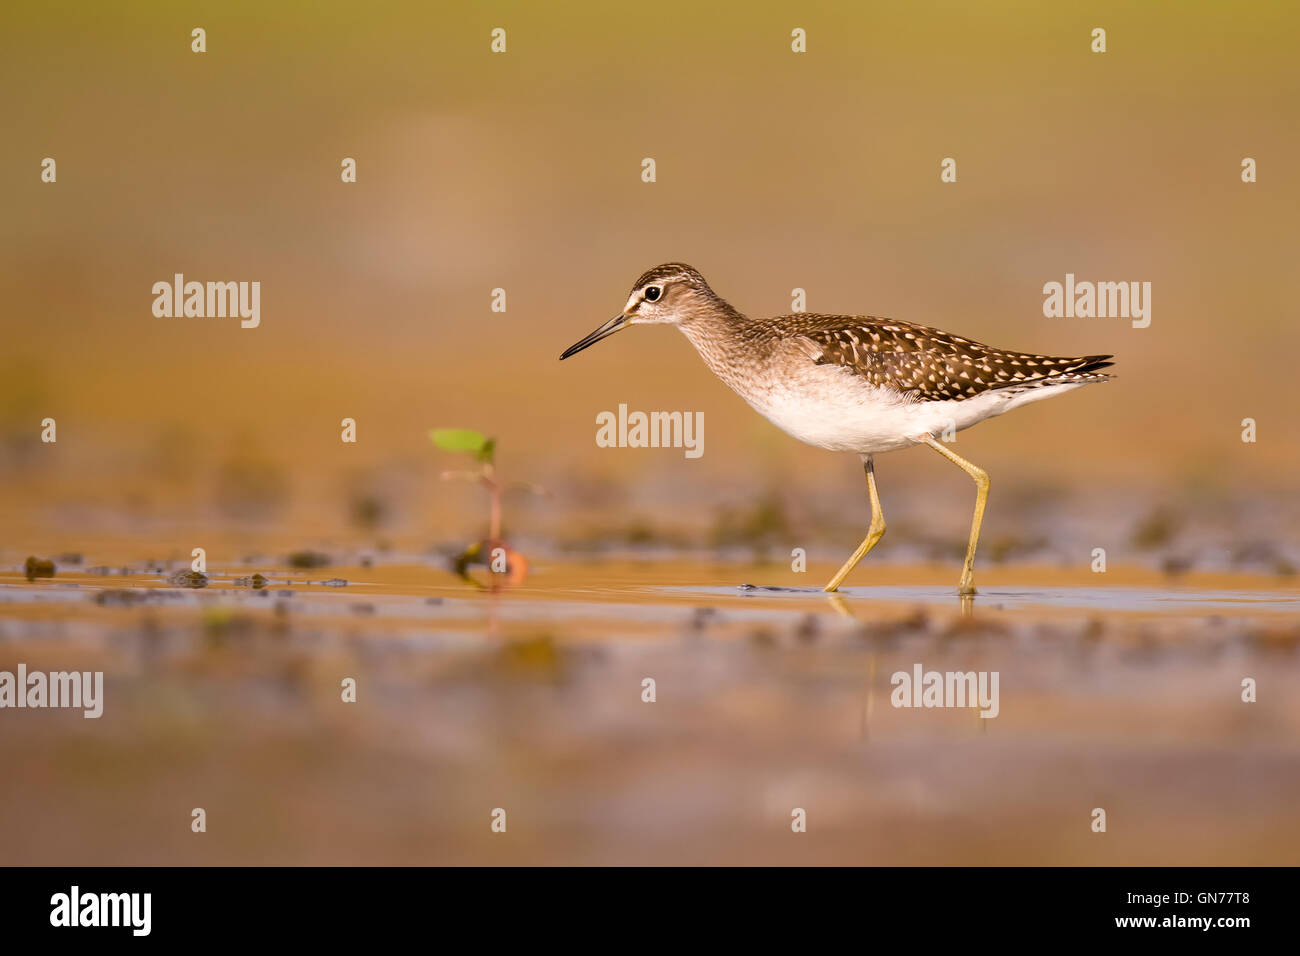 Wood sandpiper (Tringa glareola). This bird is a wader that forages in shallow water or mudflats in or around freshwater - Stock Image